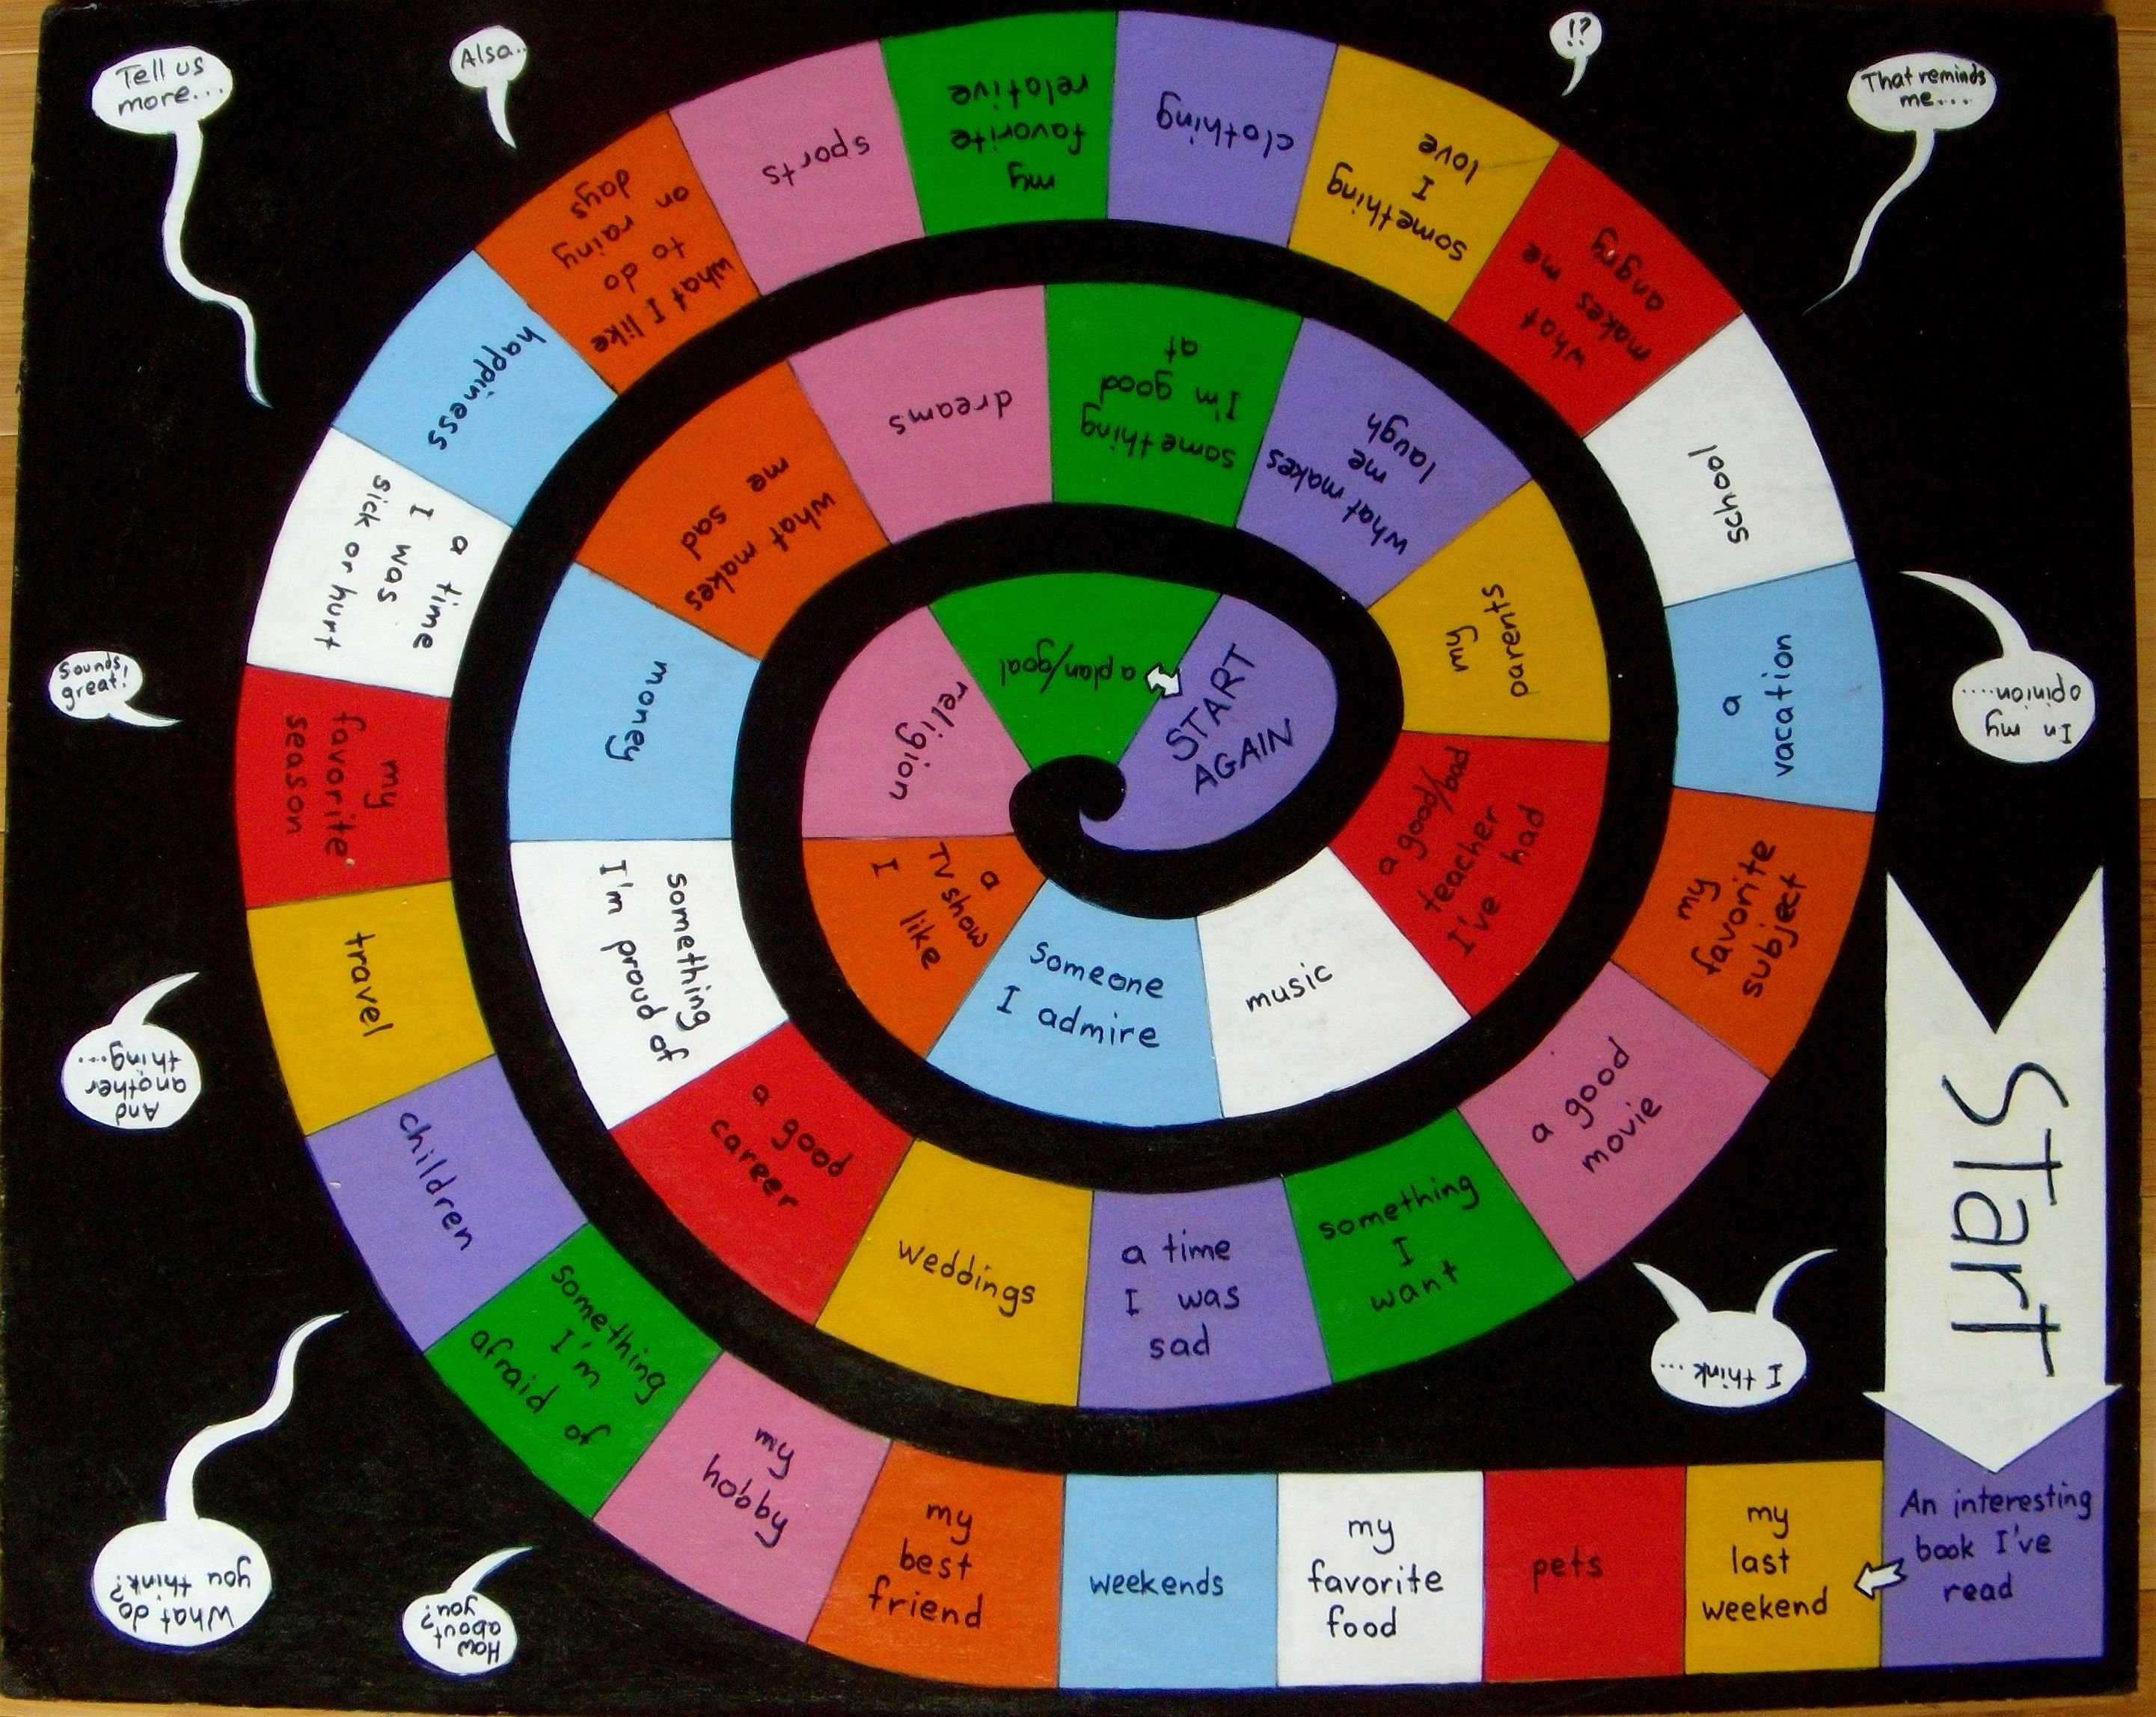 10 Attractive Ideas For A Board Game get to know me game someone did a nice job on thisthis was re